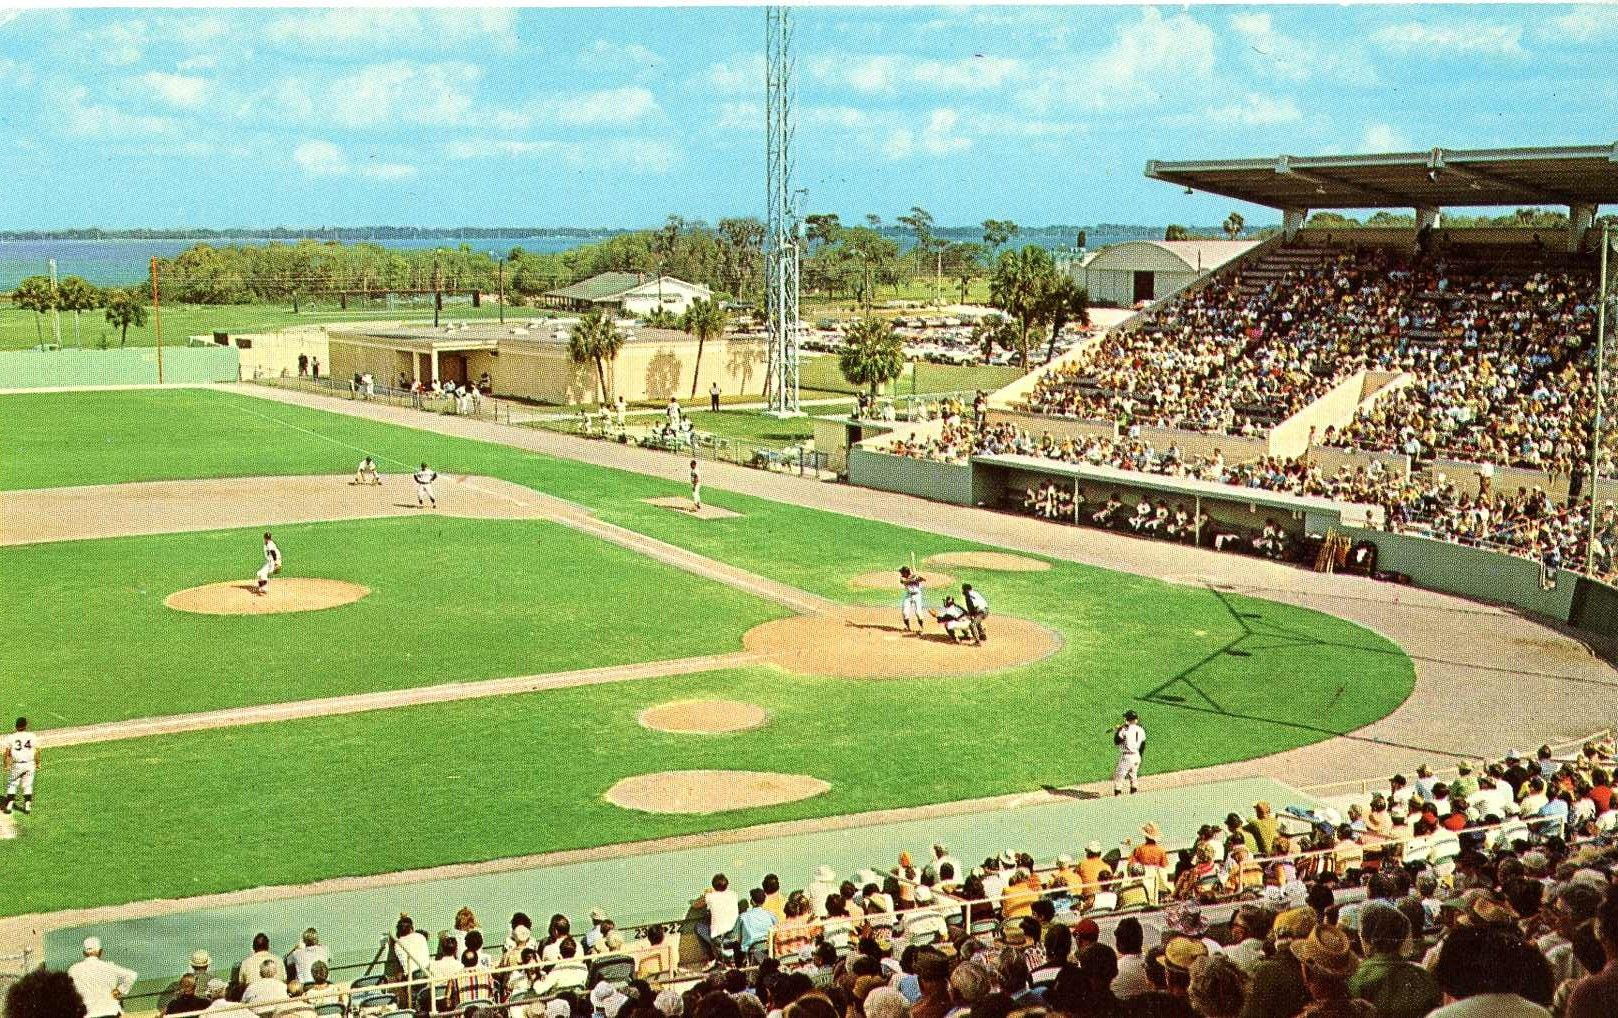 Joker Marchant Stadium spring training for Detroti Tigers Lakeland Florida. Hagins collection.